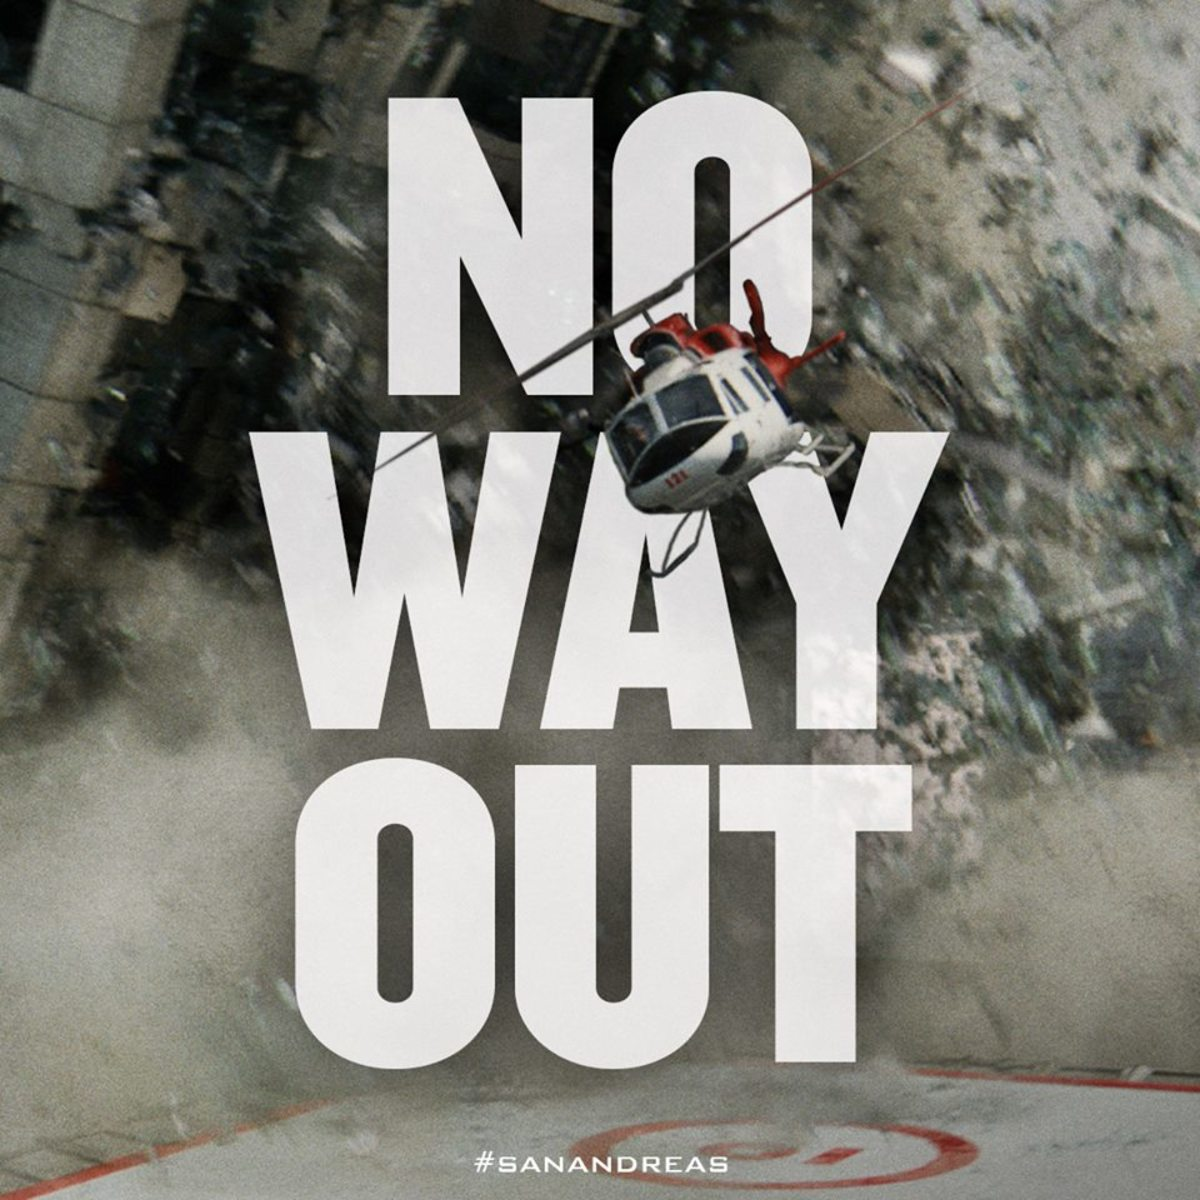 An ad for San Andreas, an especially scientifically-sound film. (Photo: Warner Bros.)